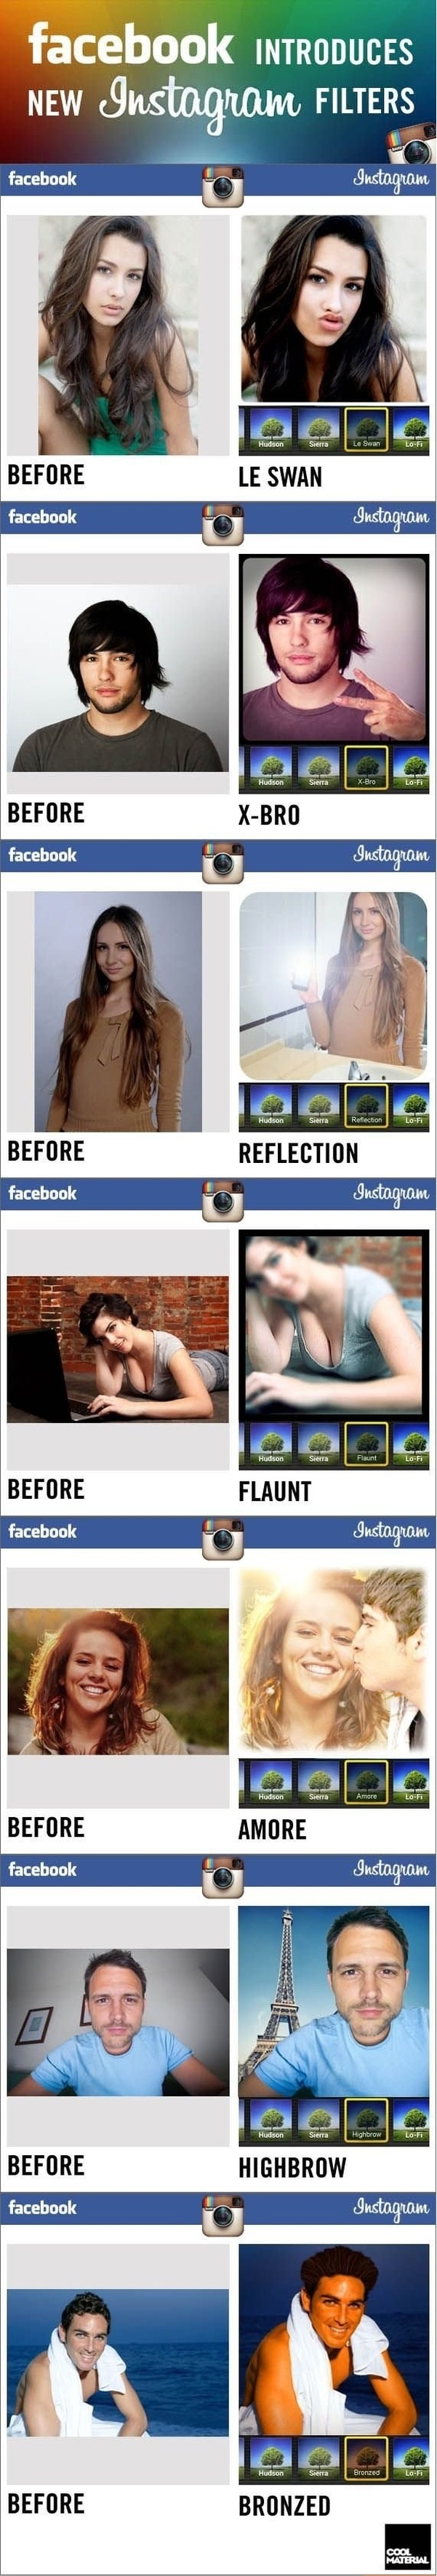 funny-picture-facebook-instagram-filters